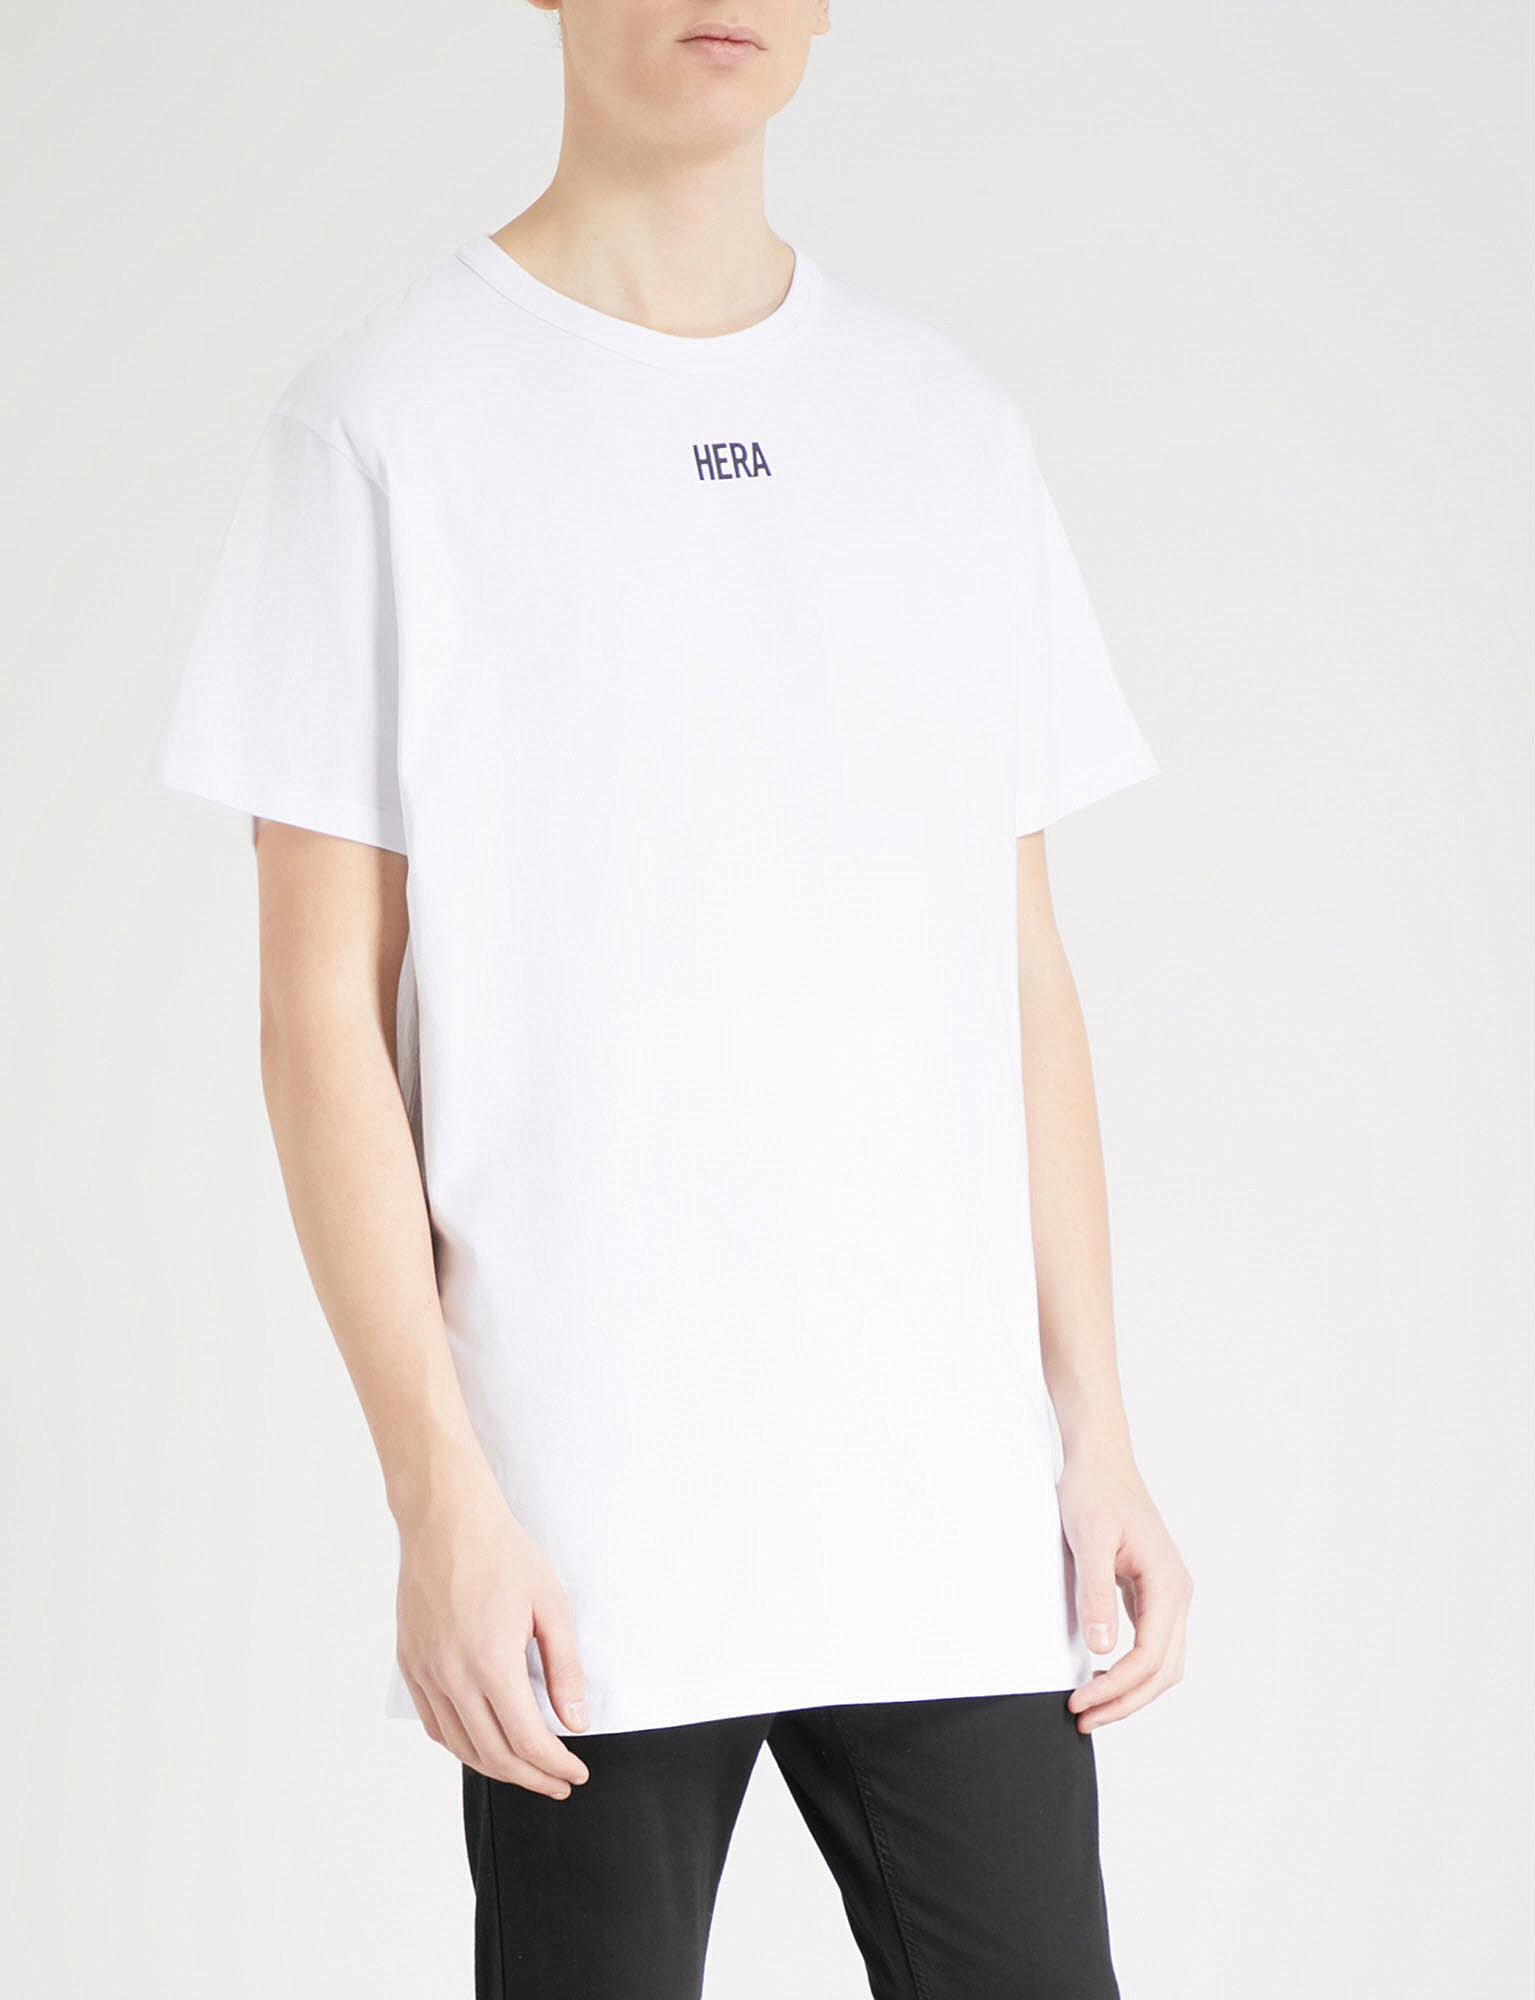 e593272436521 T Hera Shirt Printed White Men In For Lyst Cotton Jersey A54L3qcRjS